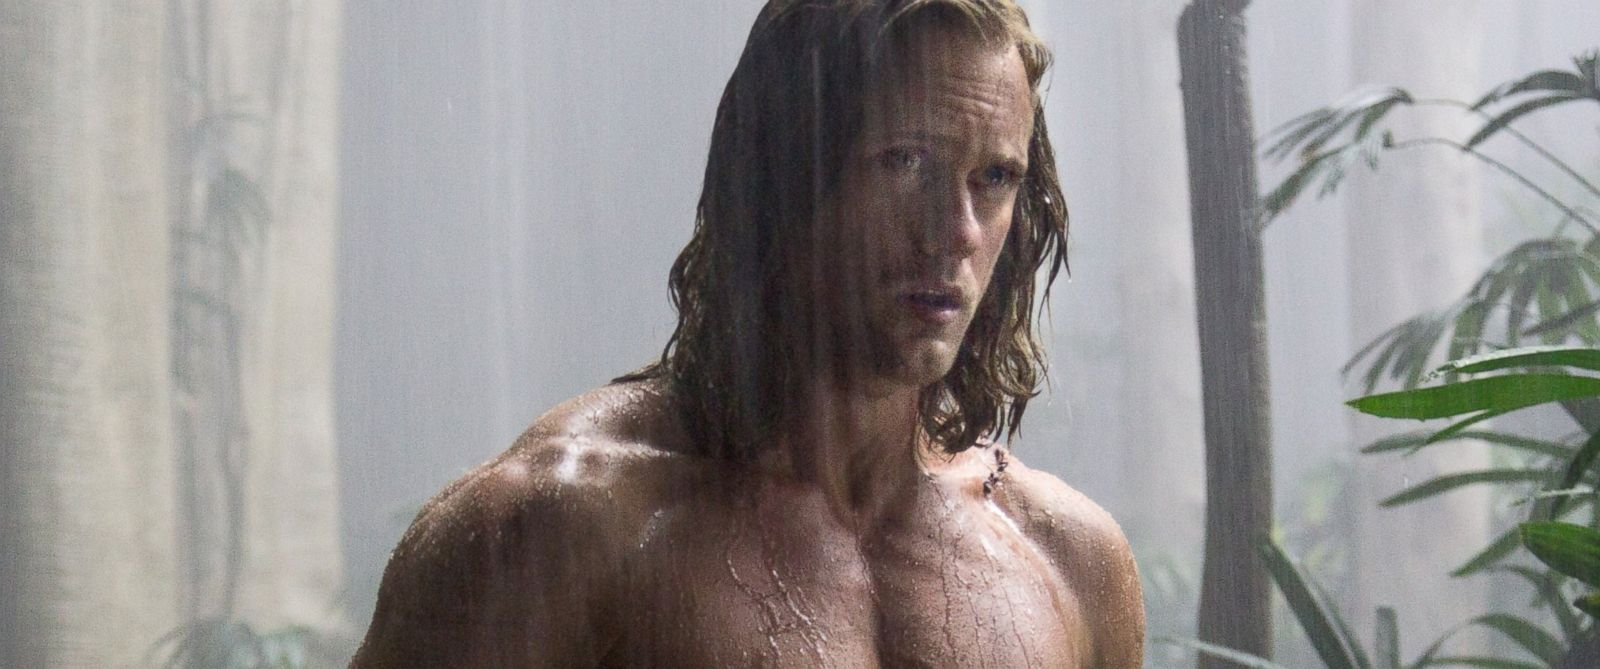 "PHOTO: Alexander Skarsgard as Tarzan in ""The Legend Of Tarzan."""